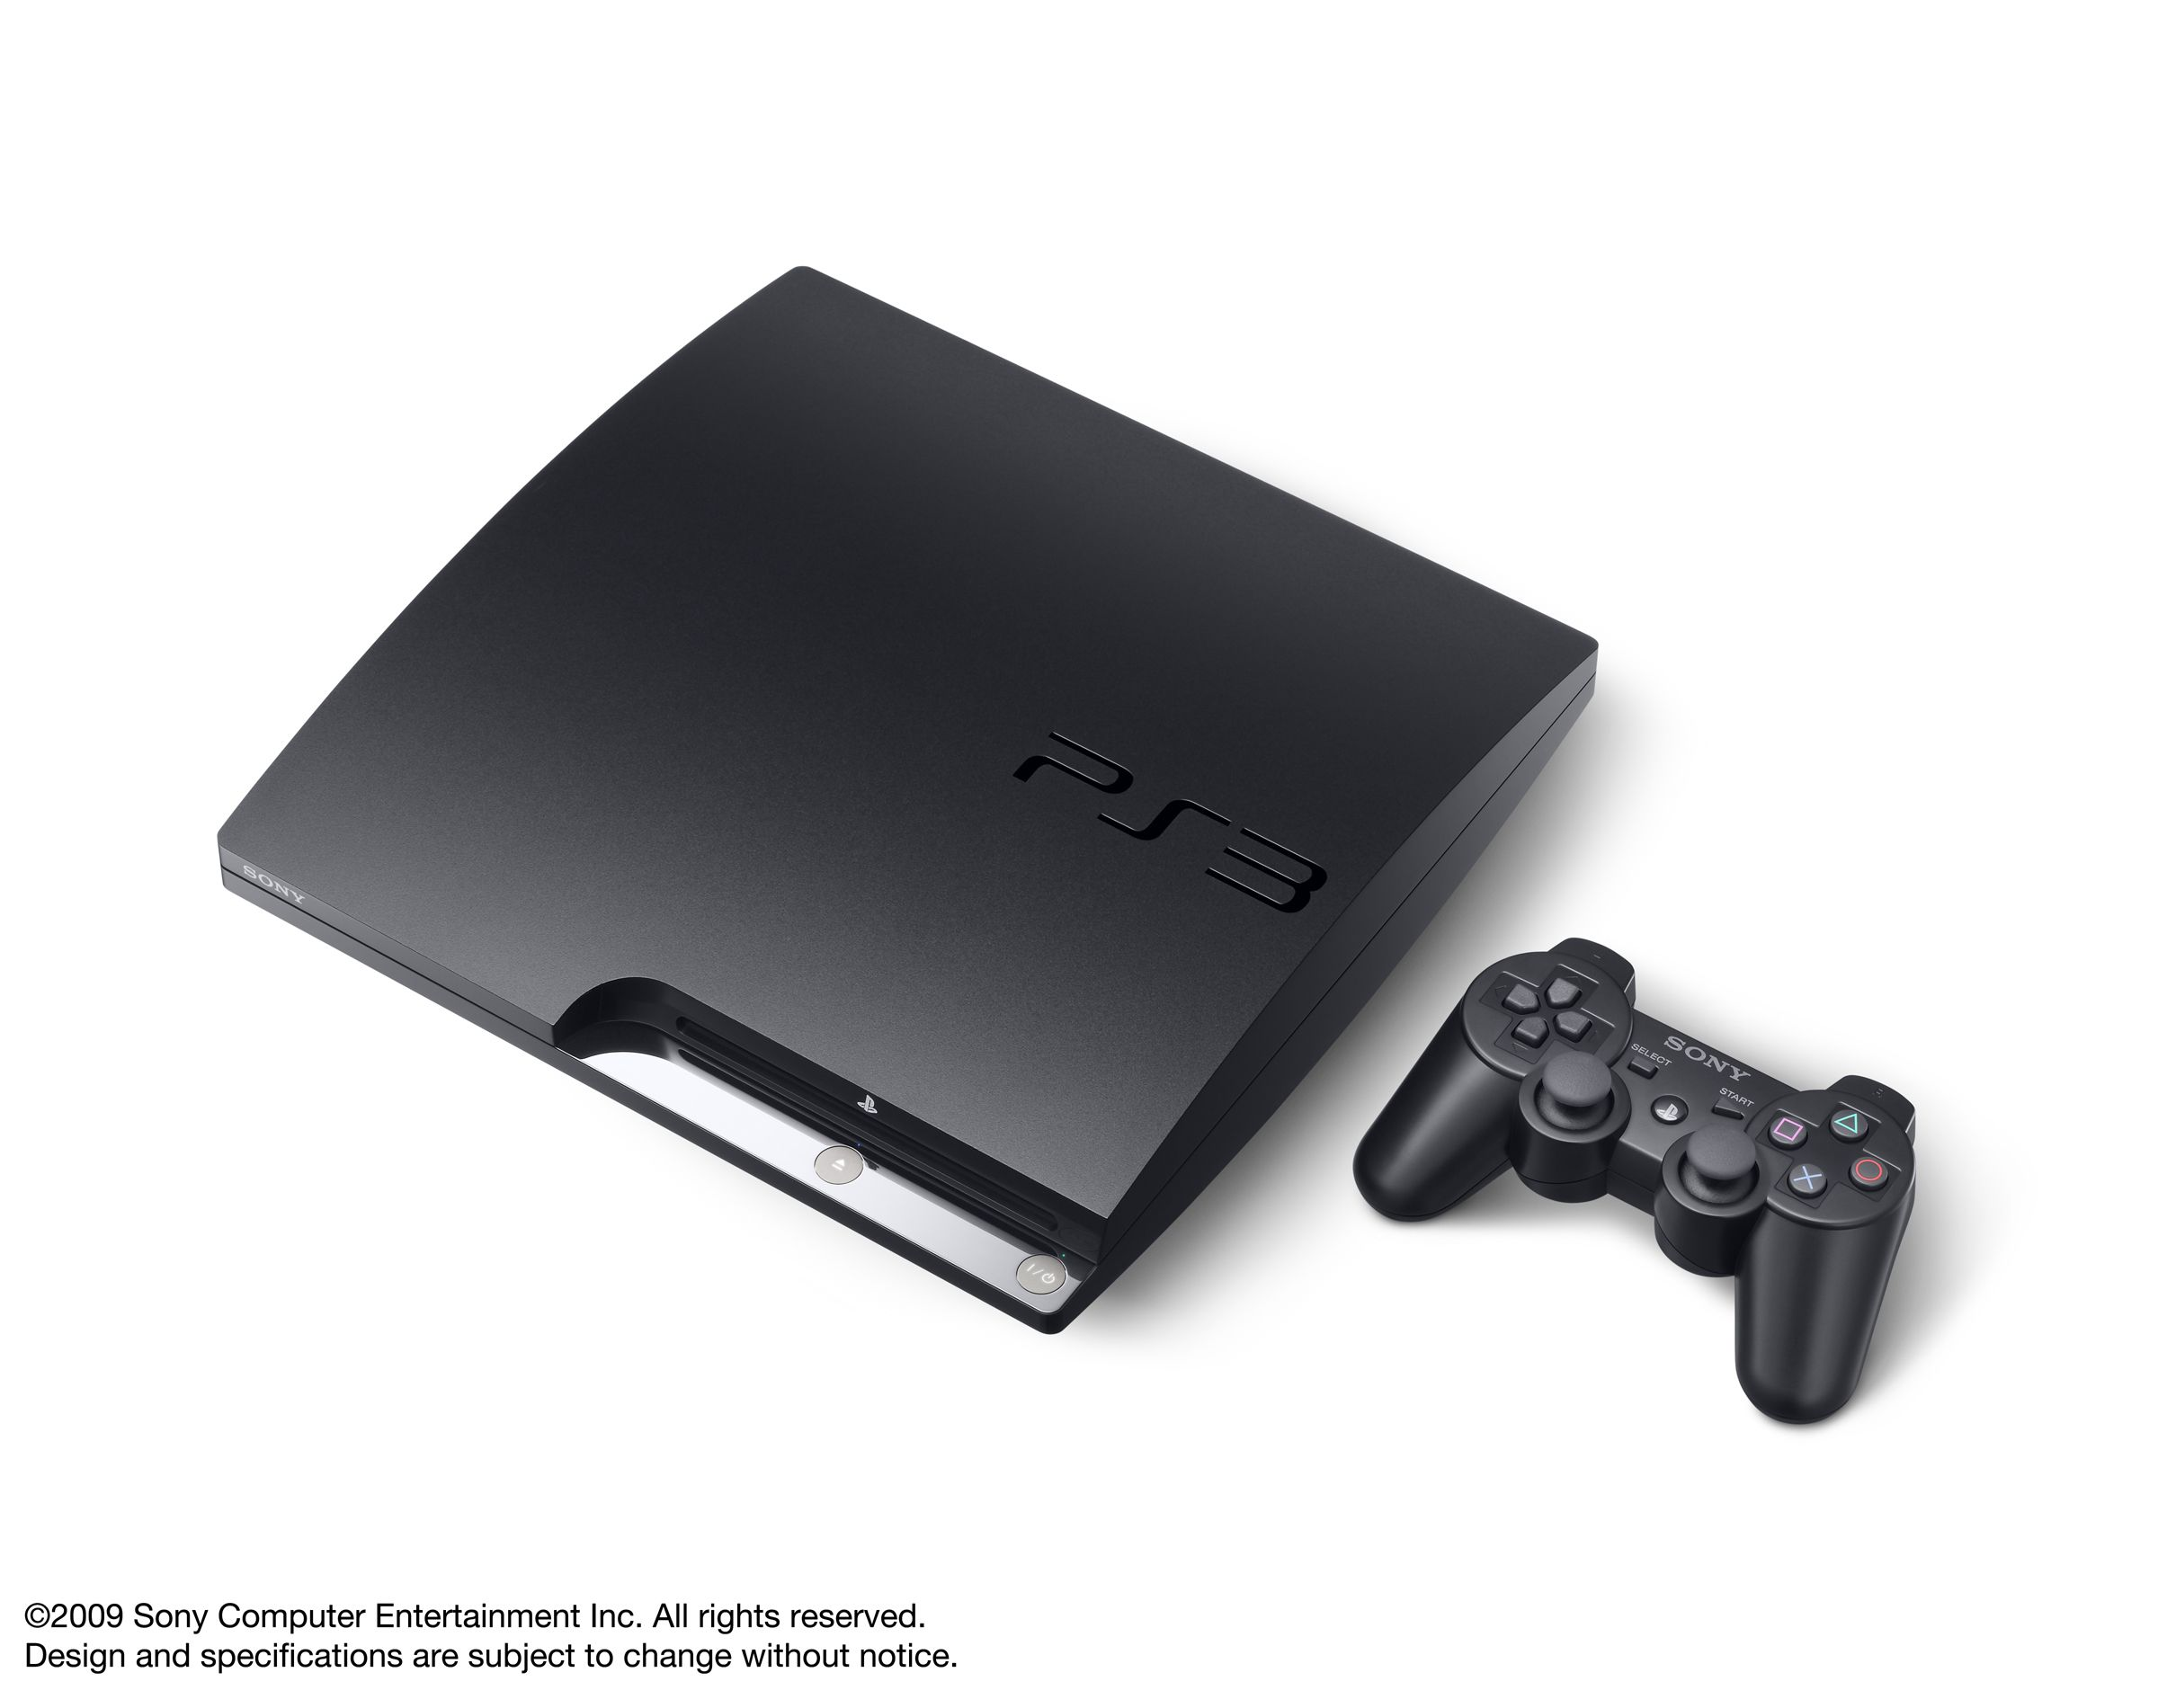 playstation 3 ps3 slim release dates and prices. Black Bedroom Furniture Sets. Home Design Ideas